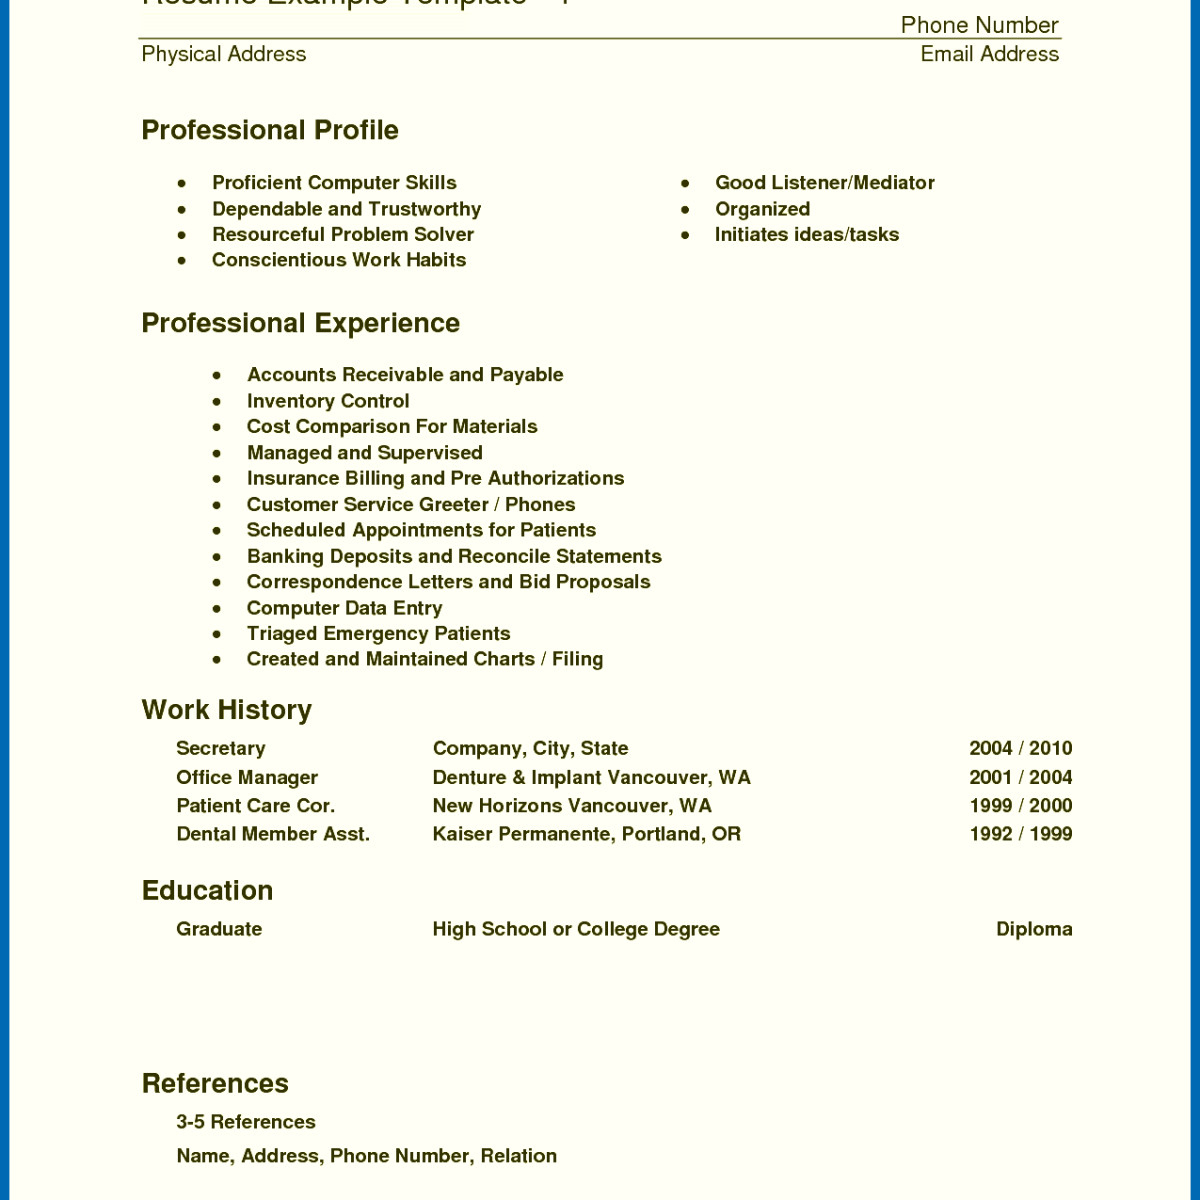 Examples Of Resume Skills - Resume Medical assistant Examples Awesome Resume Skills for Customer